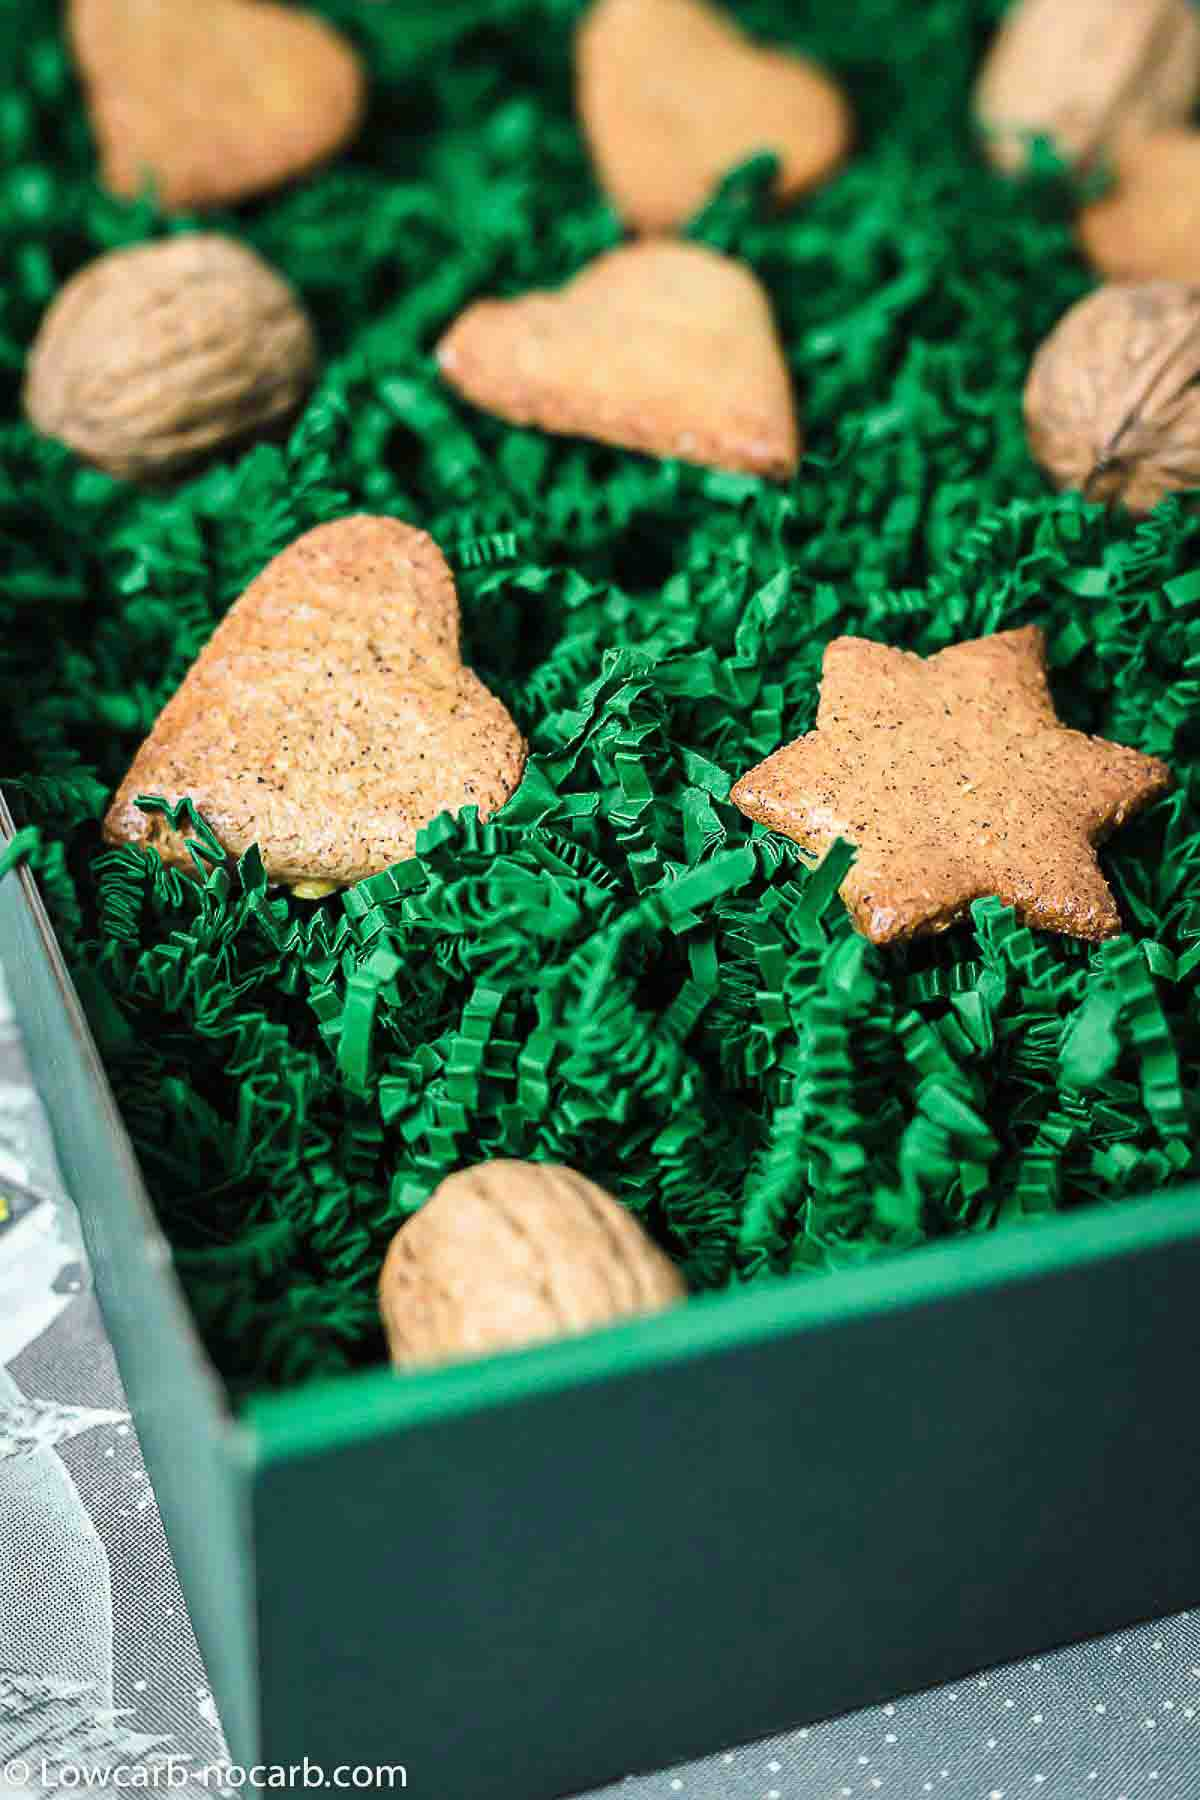 Keto Cookies in a green Christmas Box